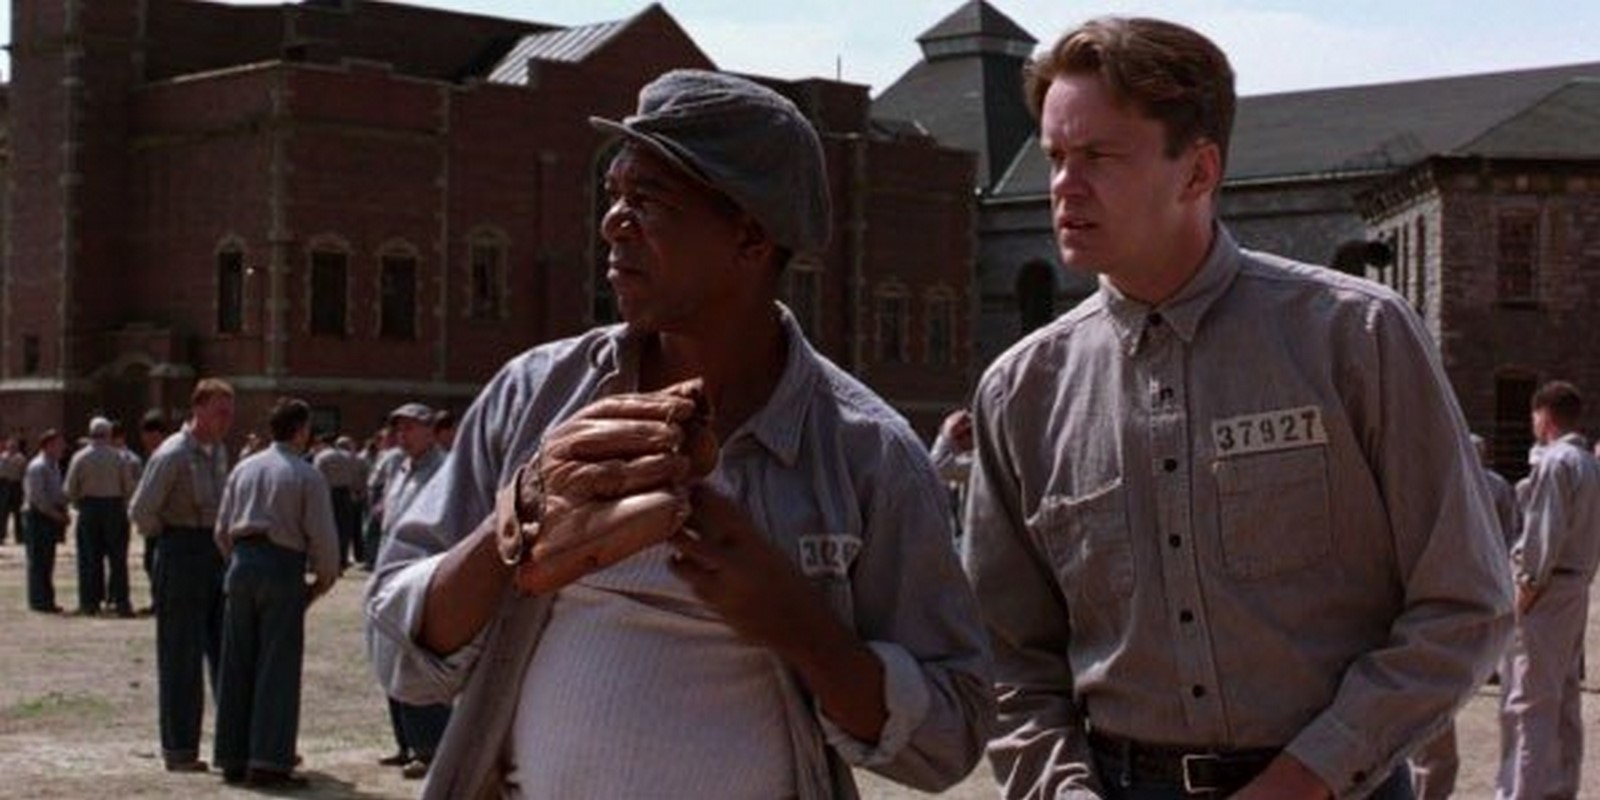 An architectural Review of The Shawshank Redemption - Sheet6